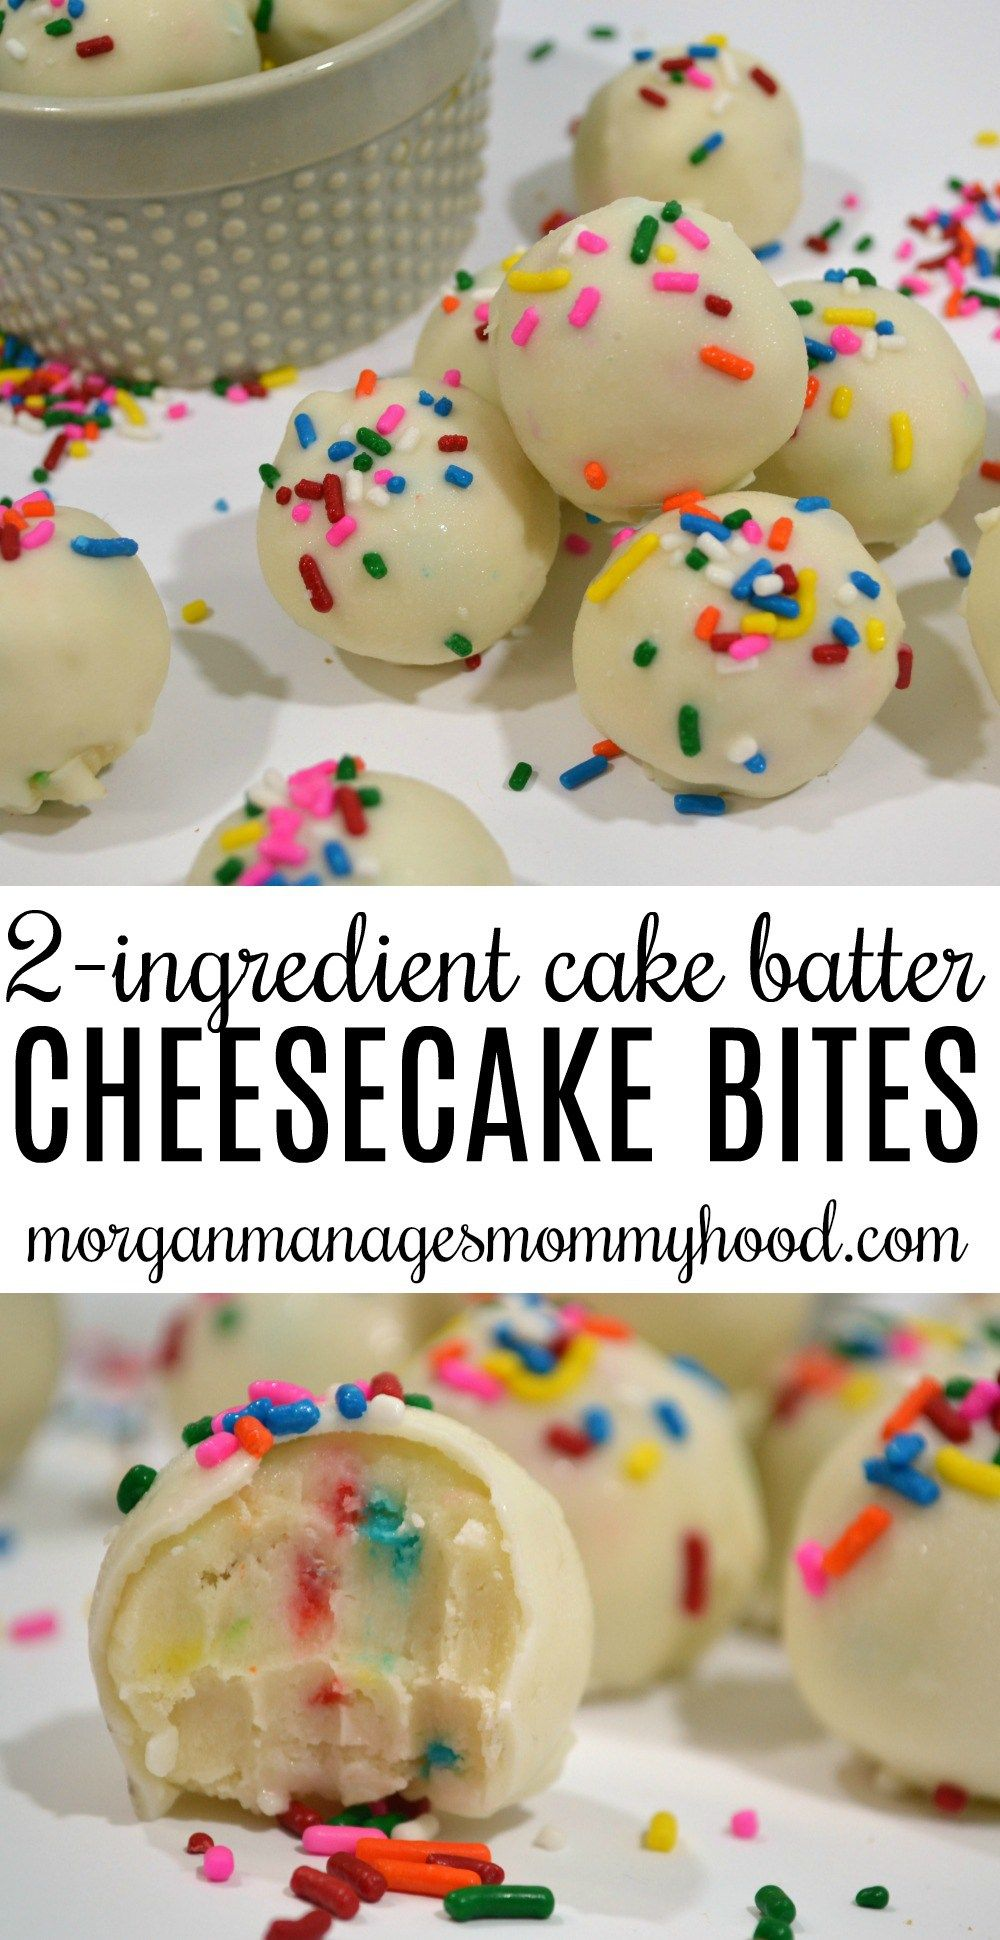 Photo of 2-Ingredient Cake Batter Cheesecake Bites – Morgan Manages Mommyhood